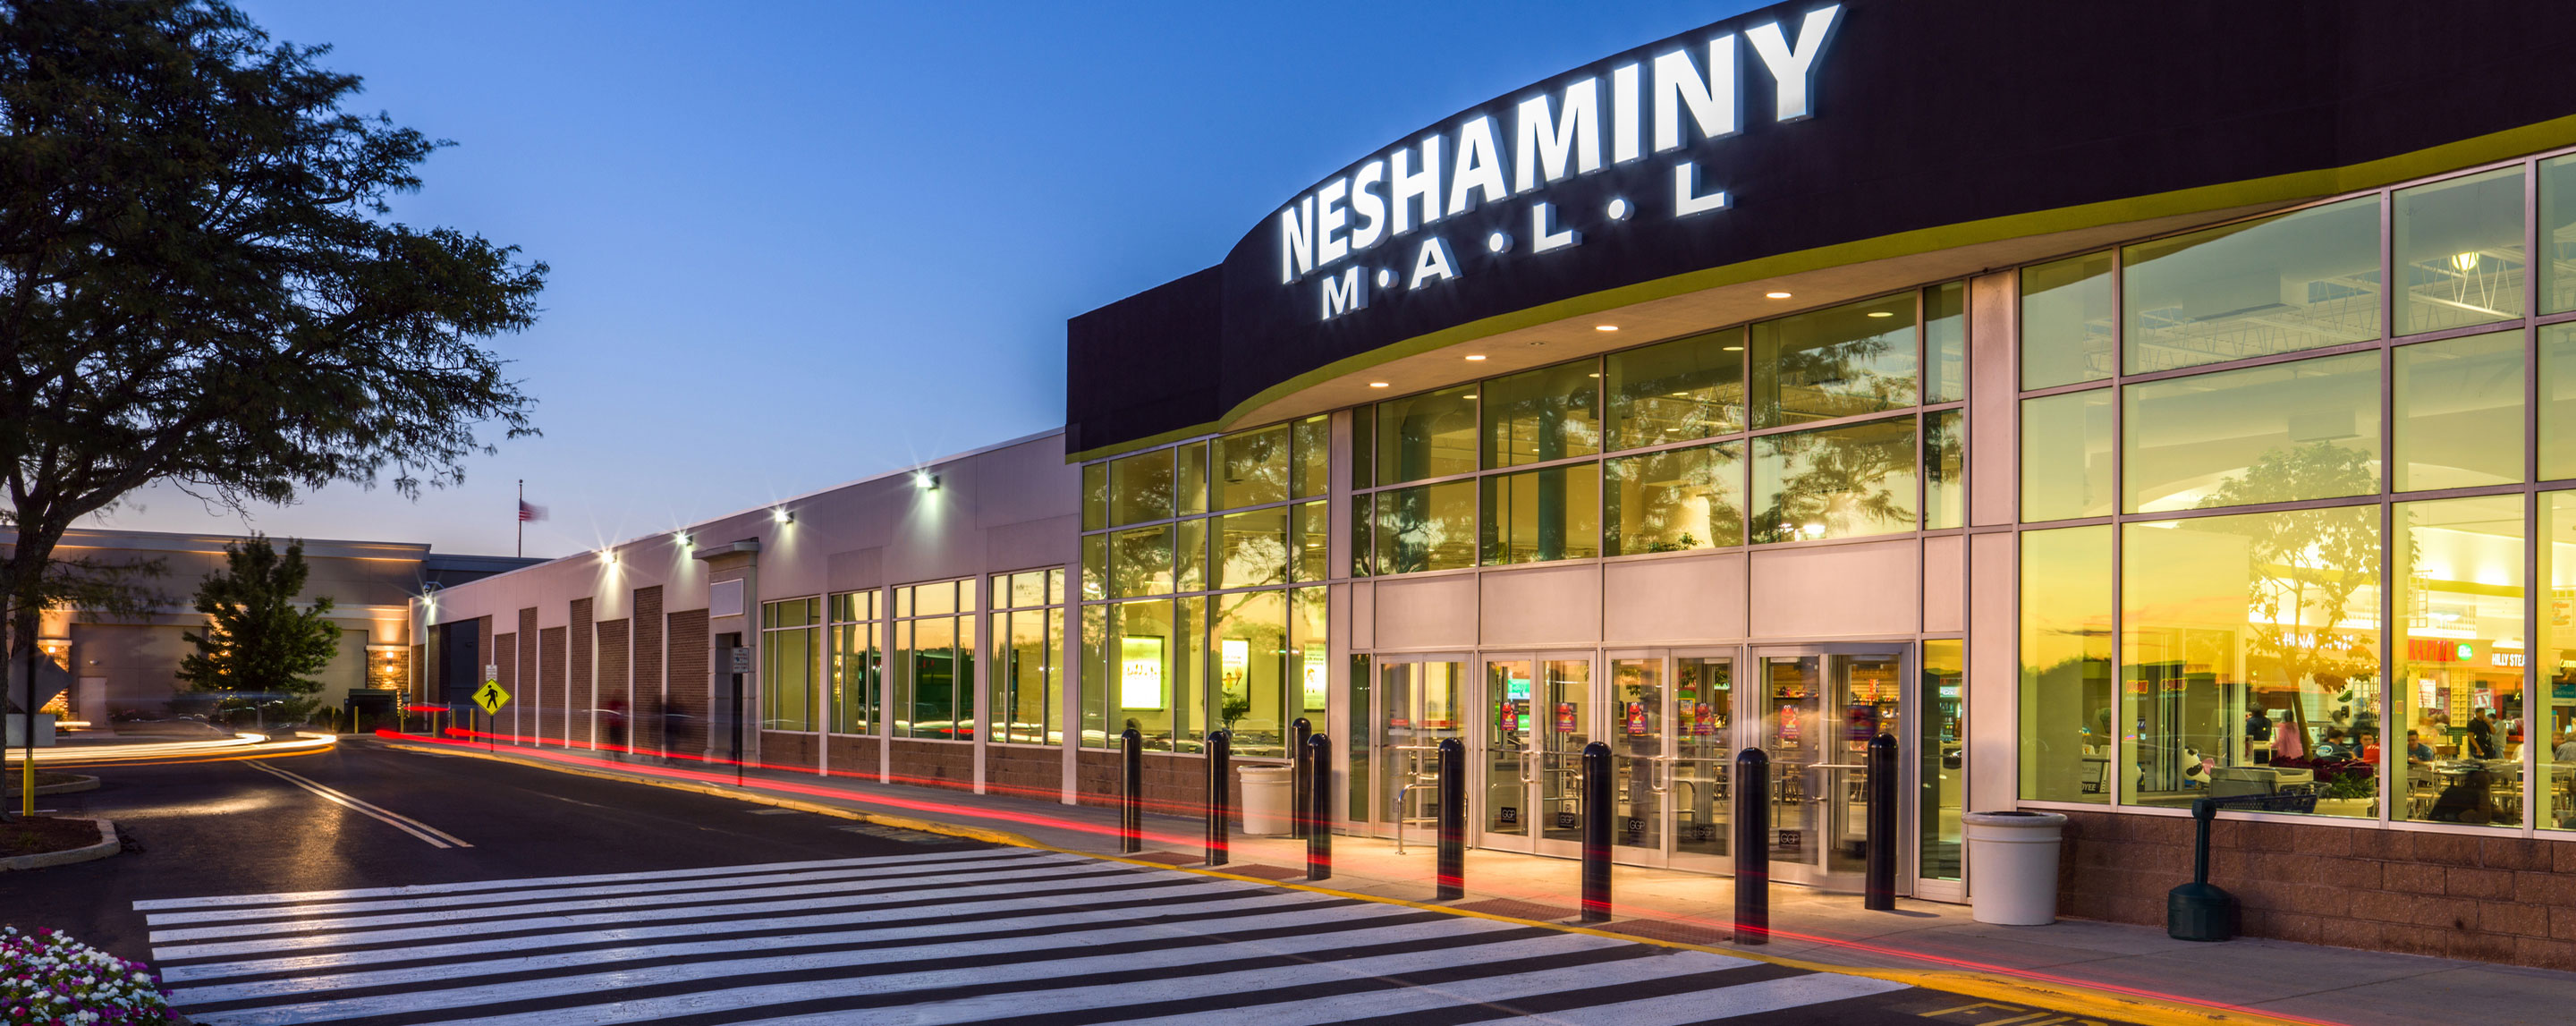 Neshaminy Mall - Main Entrance Exterior